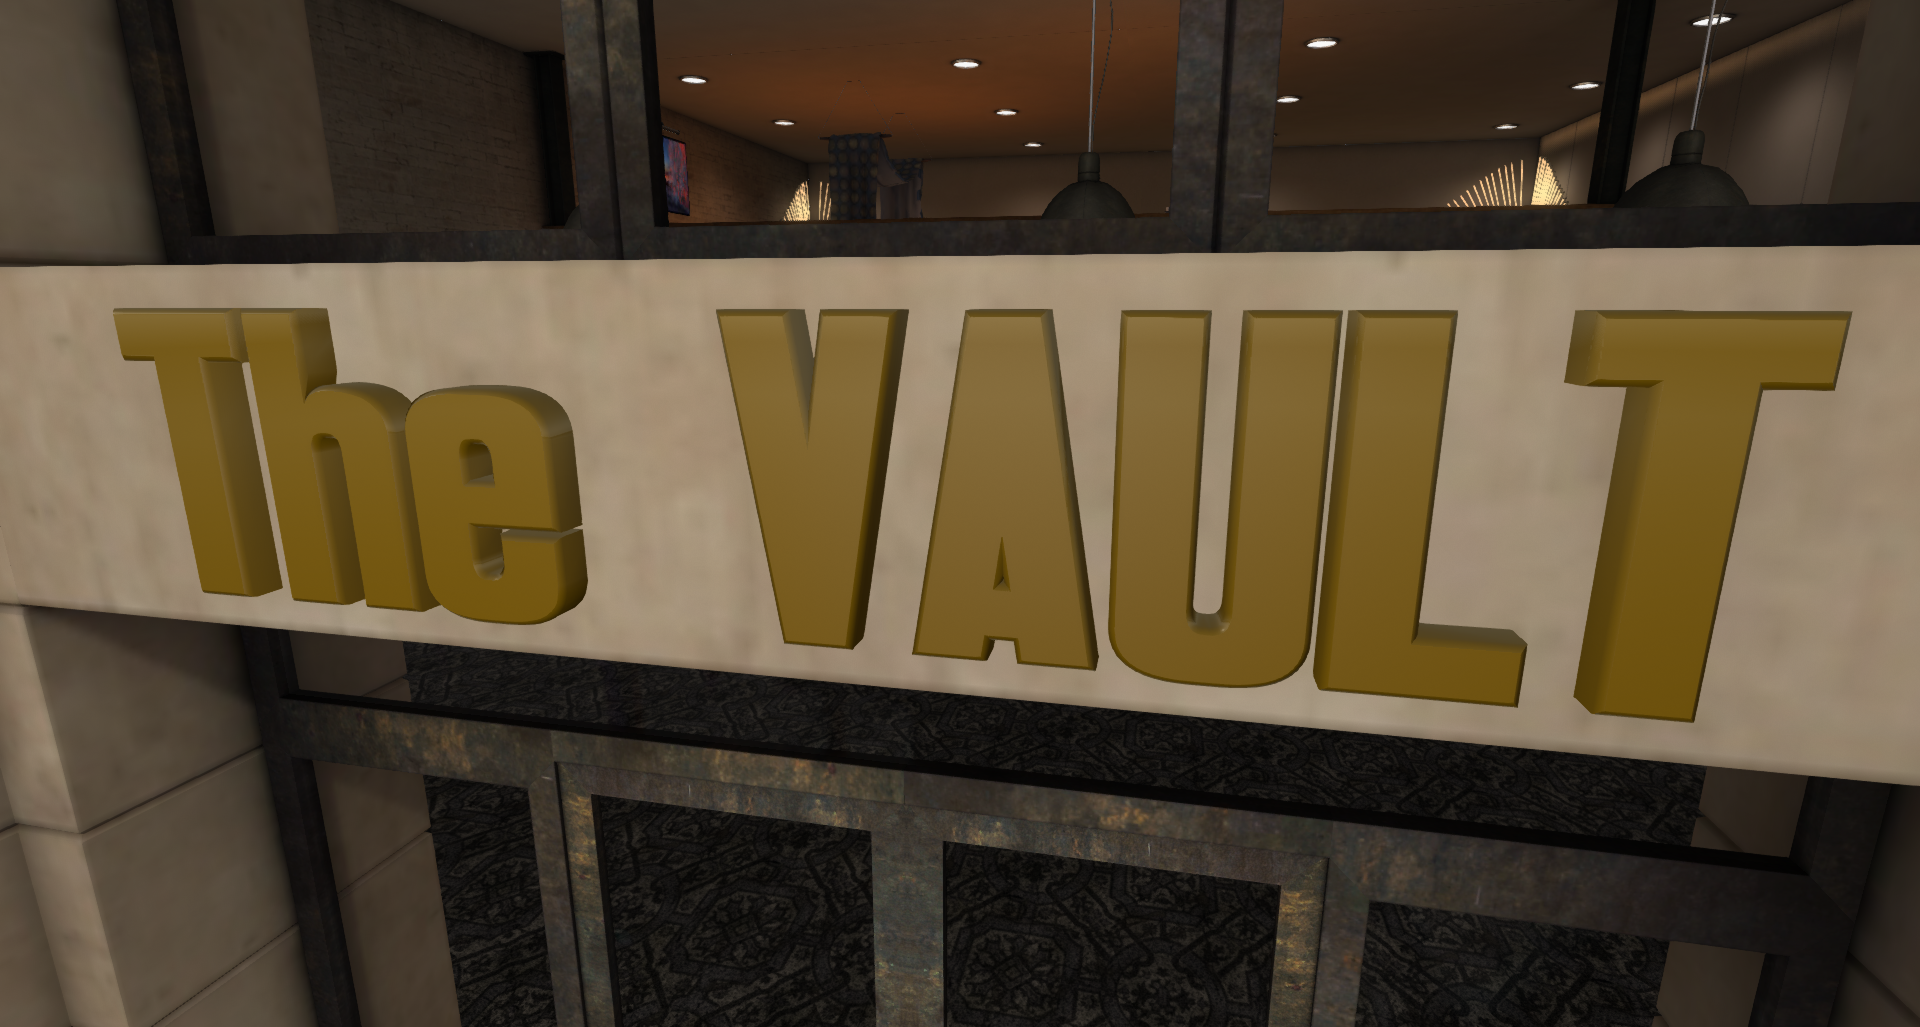 The Vault exterior sign 3-23-19_001.png